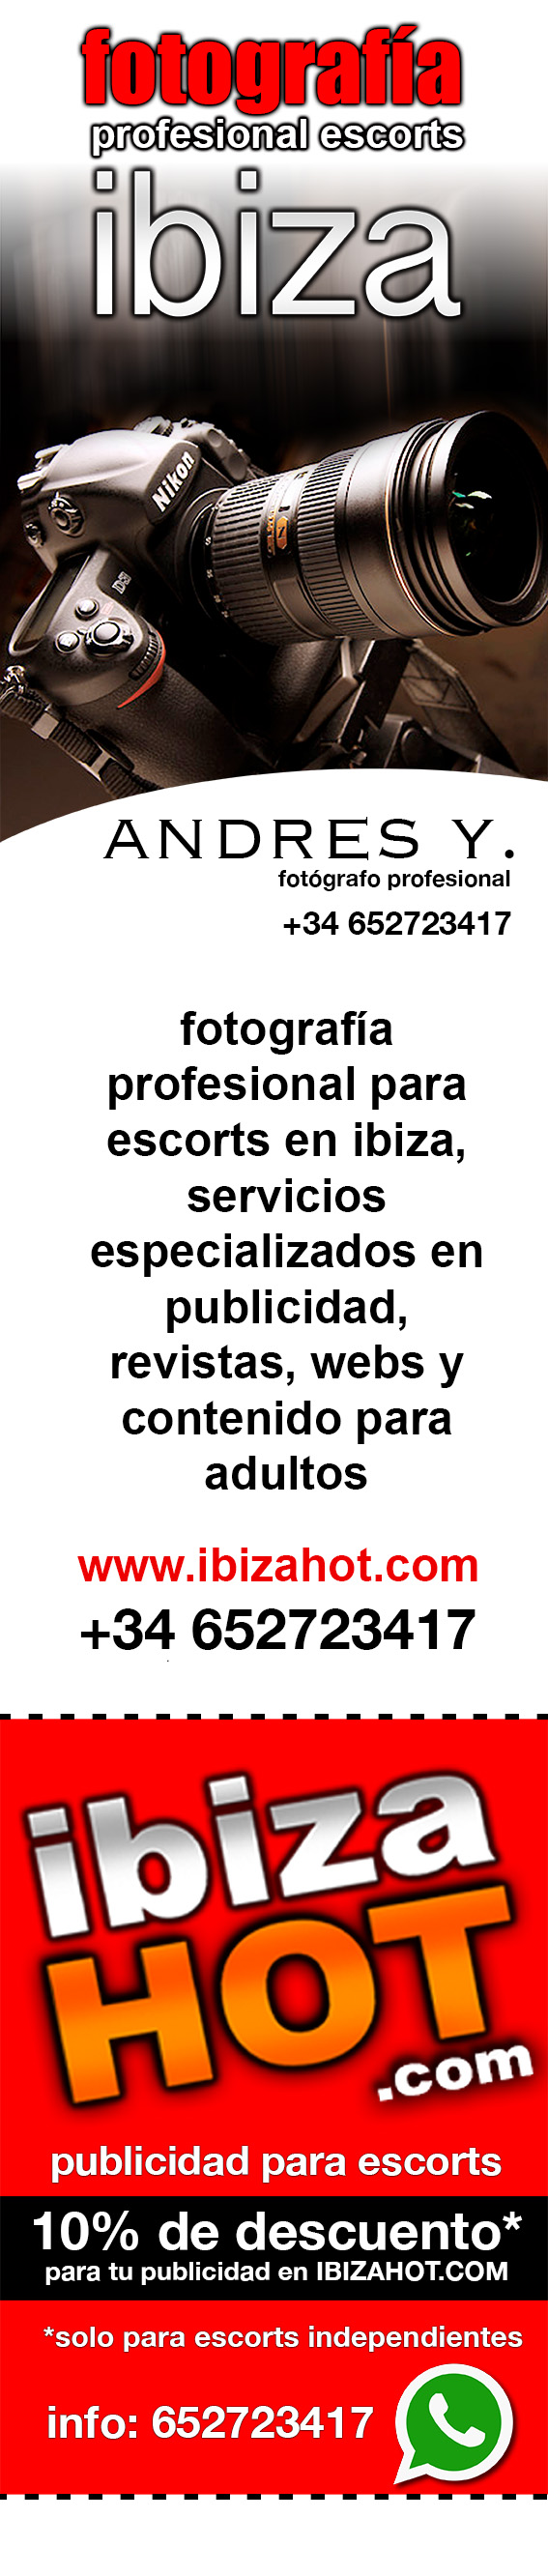 IBIZAHOT.COM - escorts ibiza, escort in ibiza, ibiza escorts, girls escort ibiza, putas en ibiza, chicas escort, putas en ibiza, escorts in ibiza, sex contacts ibiza, hookers in ibiza, sex ladies ibiza, callgirls ibiza - ESCORT ESPAÑA Y PUTAS ESPAÑA - ESCORTESPAÑA.ES